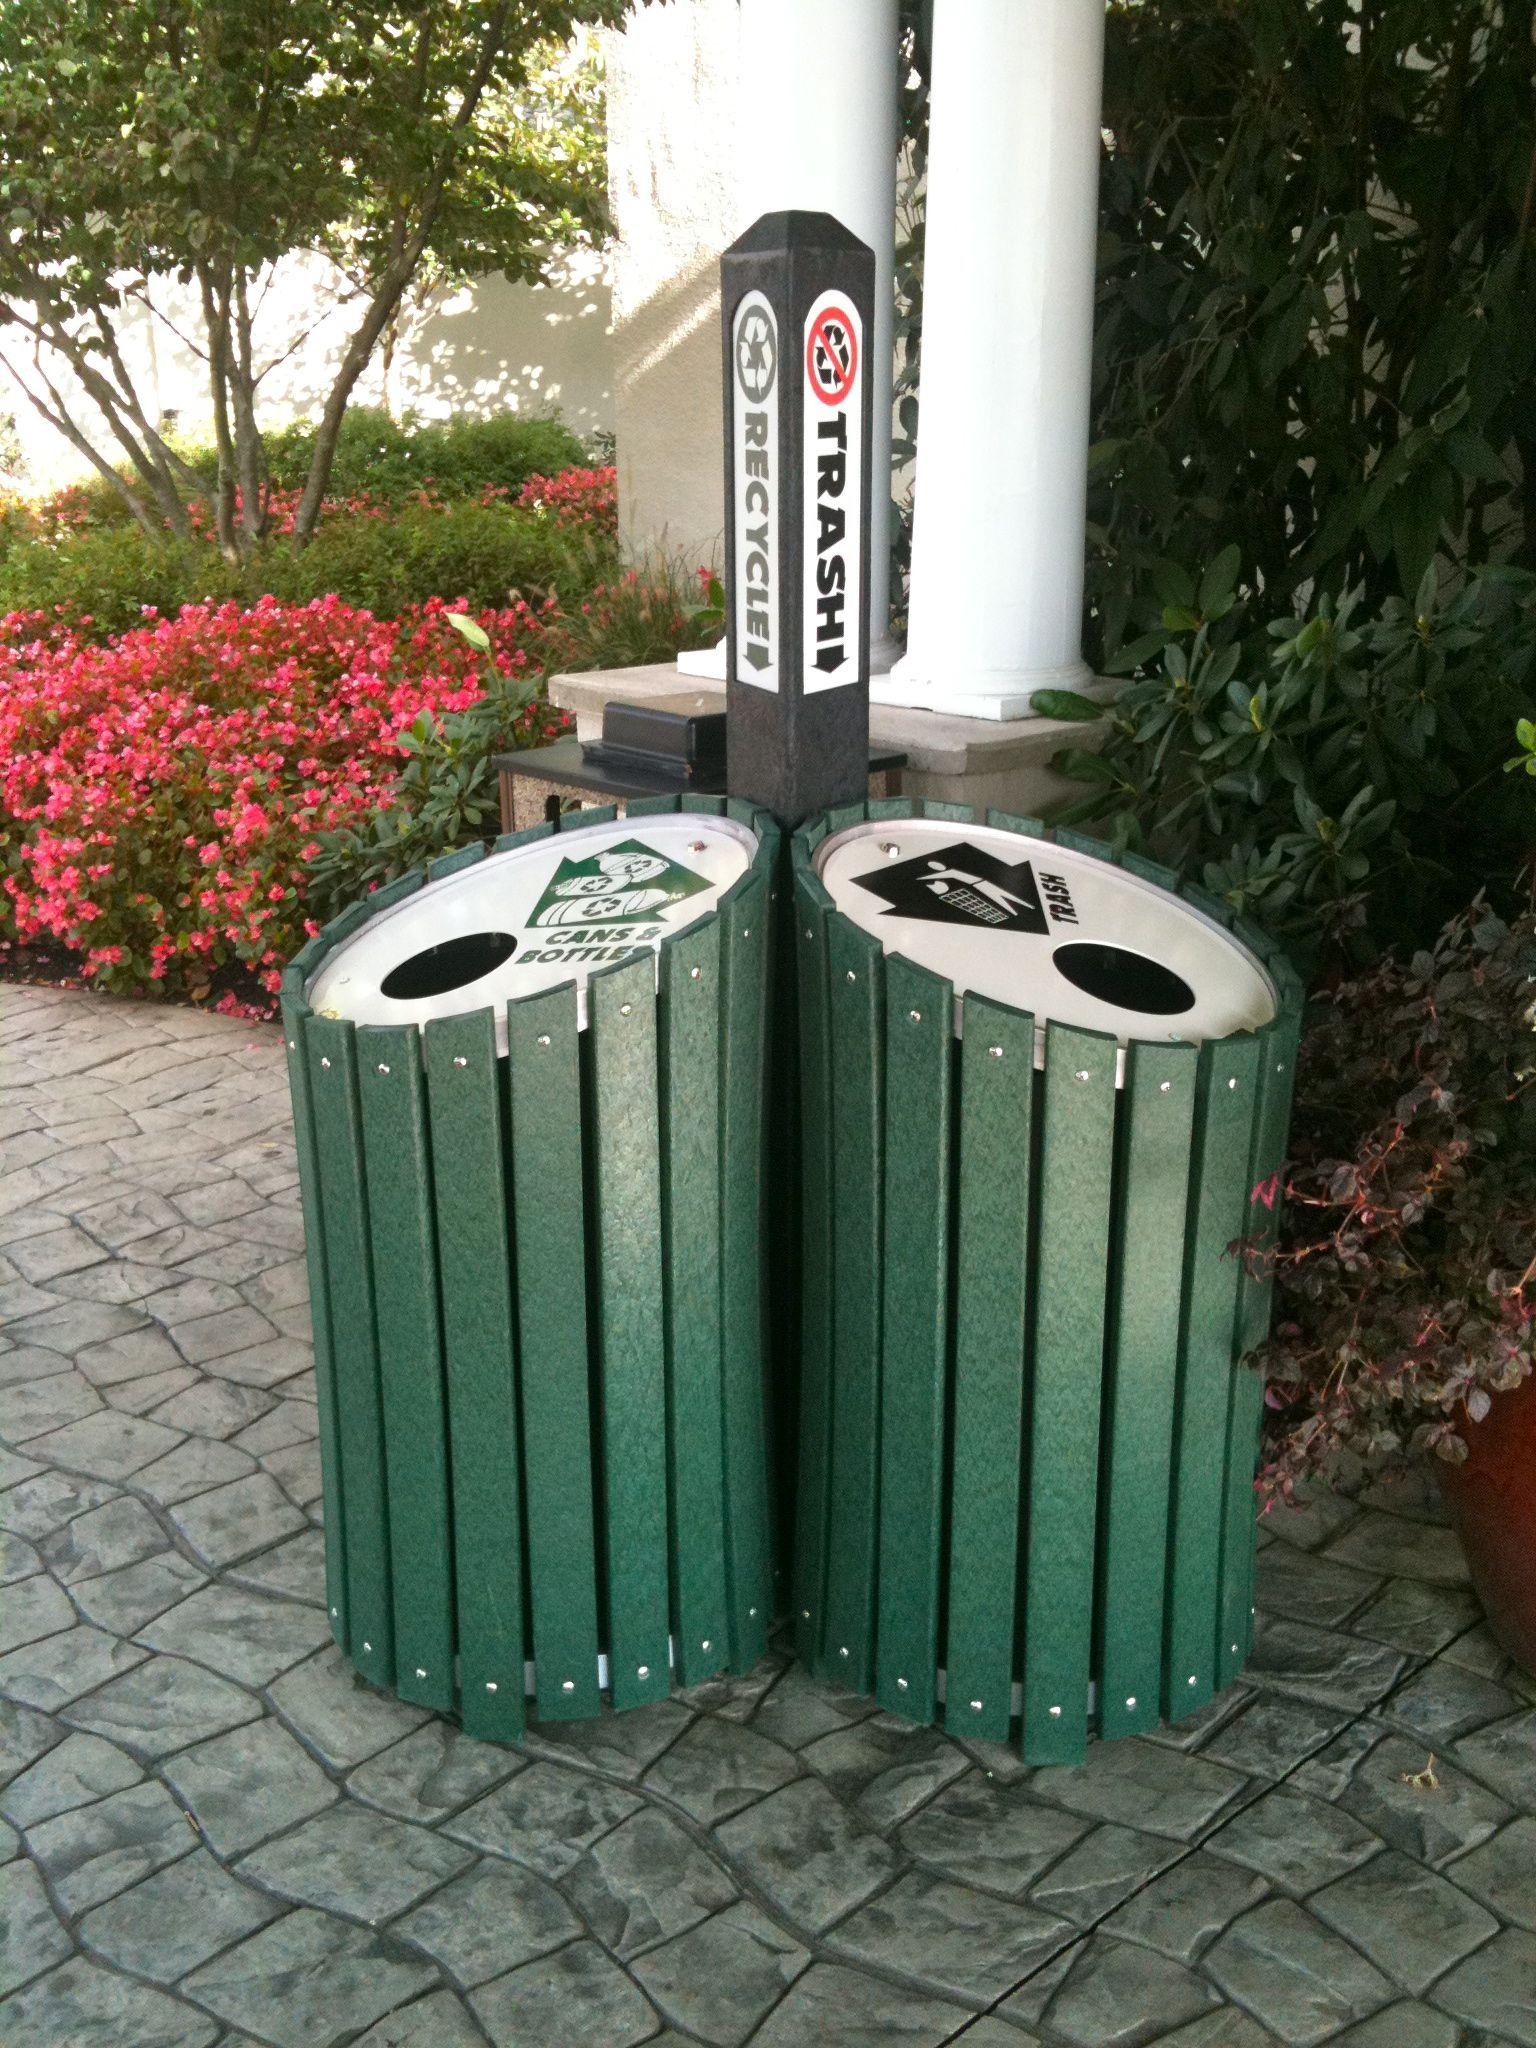 Clusters Recycling Bins Made From Recycled Plastic Hdpe Lumber And Recycled Aluminum Garbage Can Recycling Trash Bins